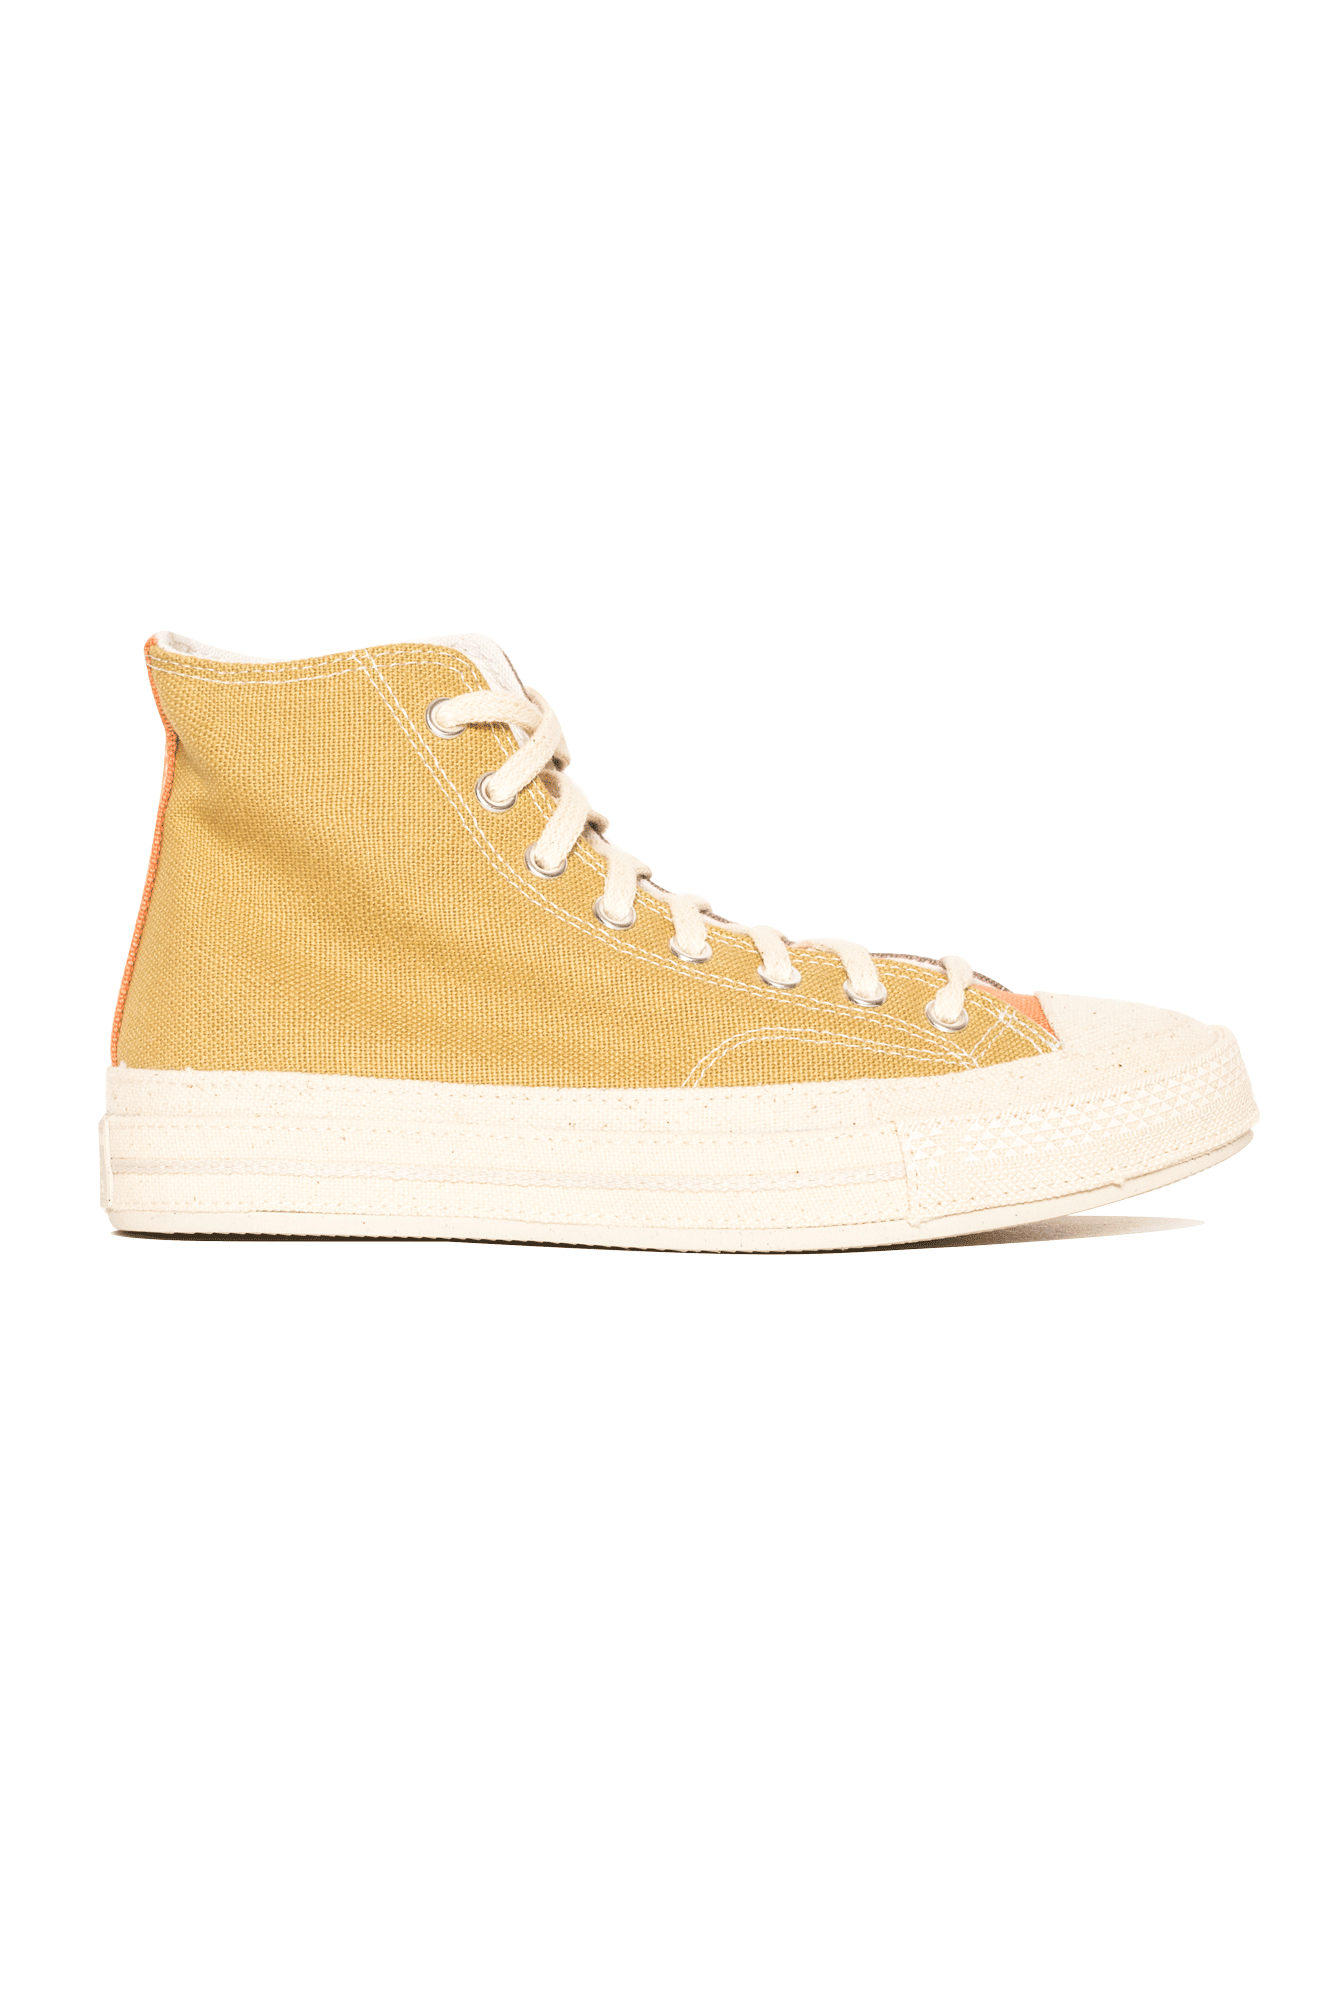 Converse Sneakers Chuck 70 HI Tri Panel Renew Multicolor 167767C#000#SAND#4,5 - One Block Down